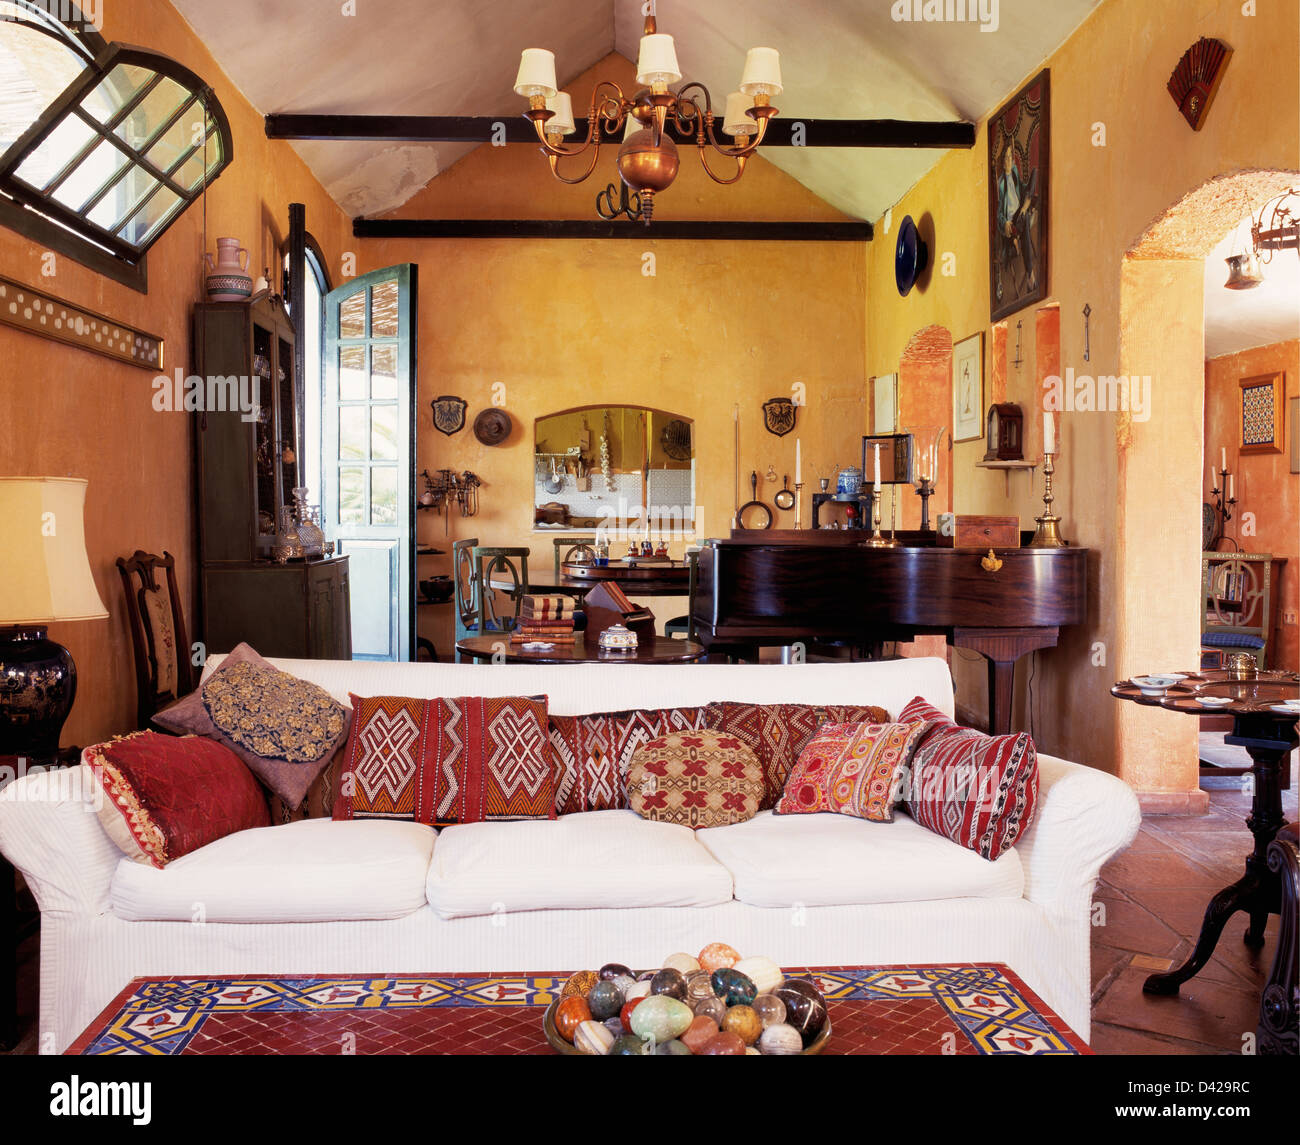 White Sofa With Patterned Cushions In Yellow Spanish